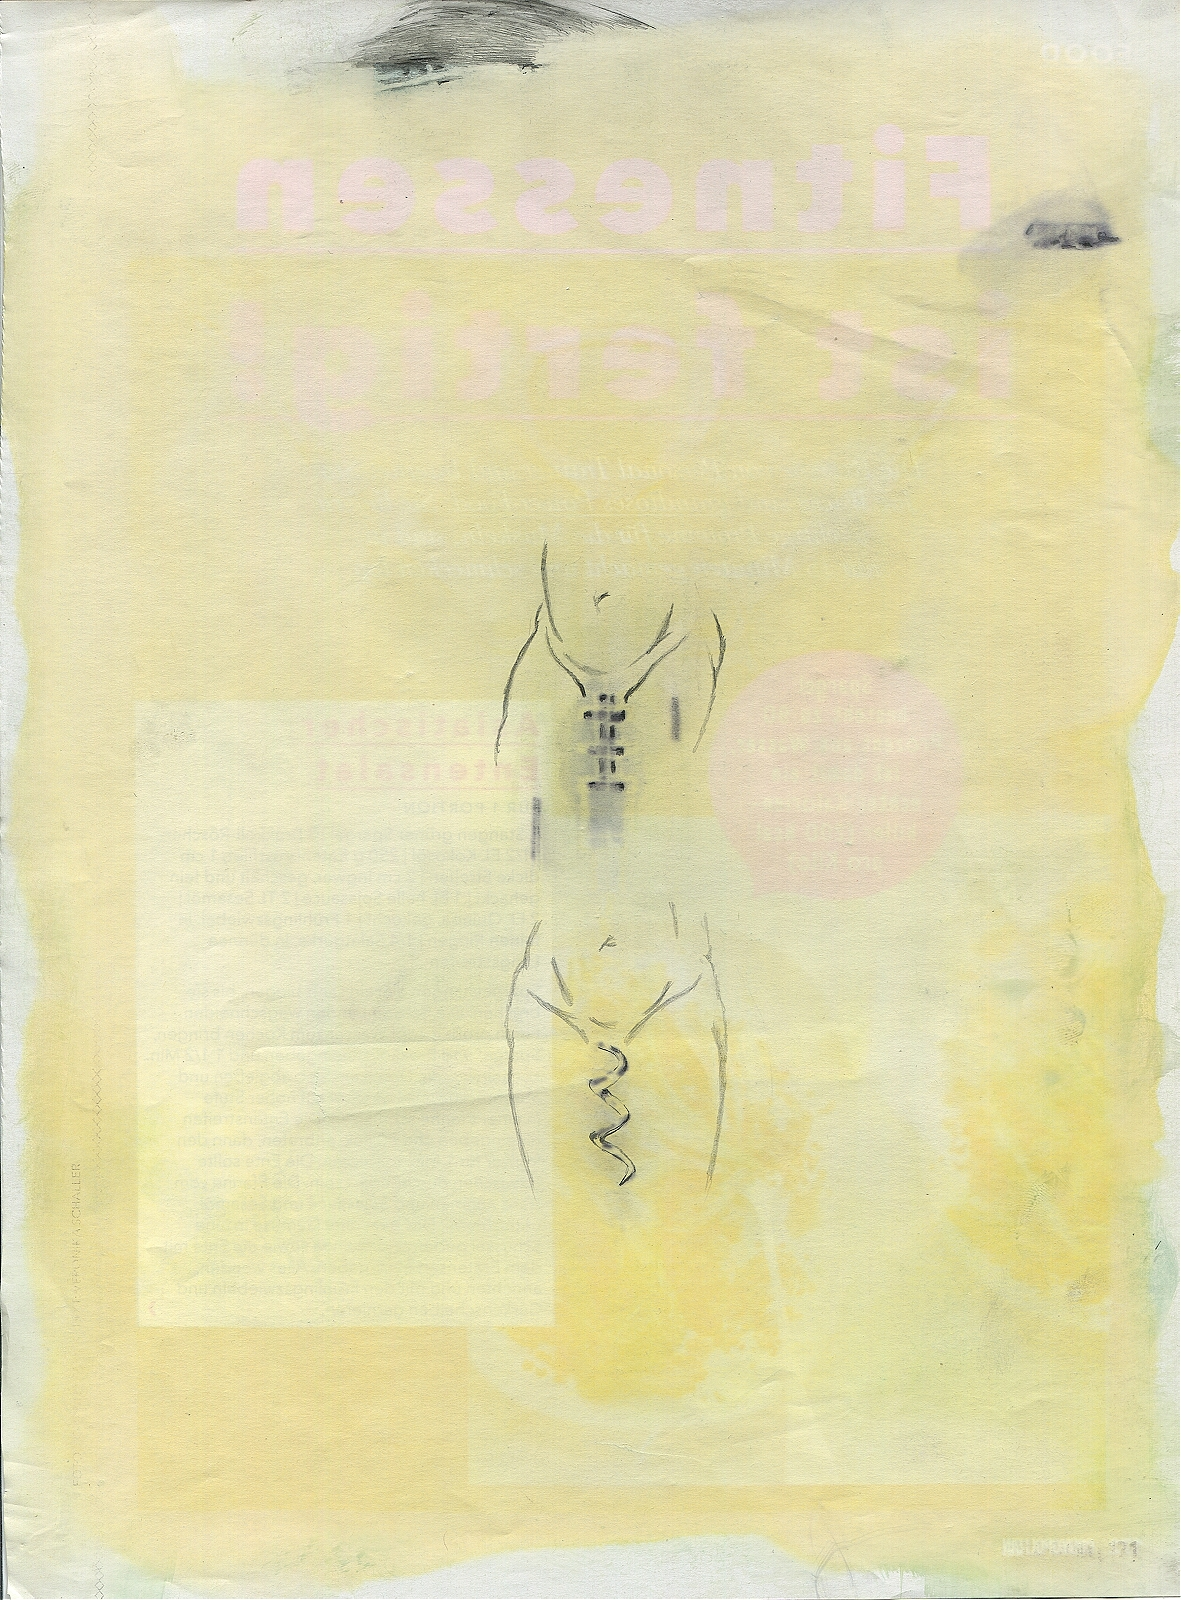 """Malefunction"", 2018, lavender-oil, pencil on magazine page, 20.5 x 28 cm"